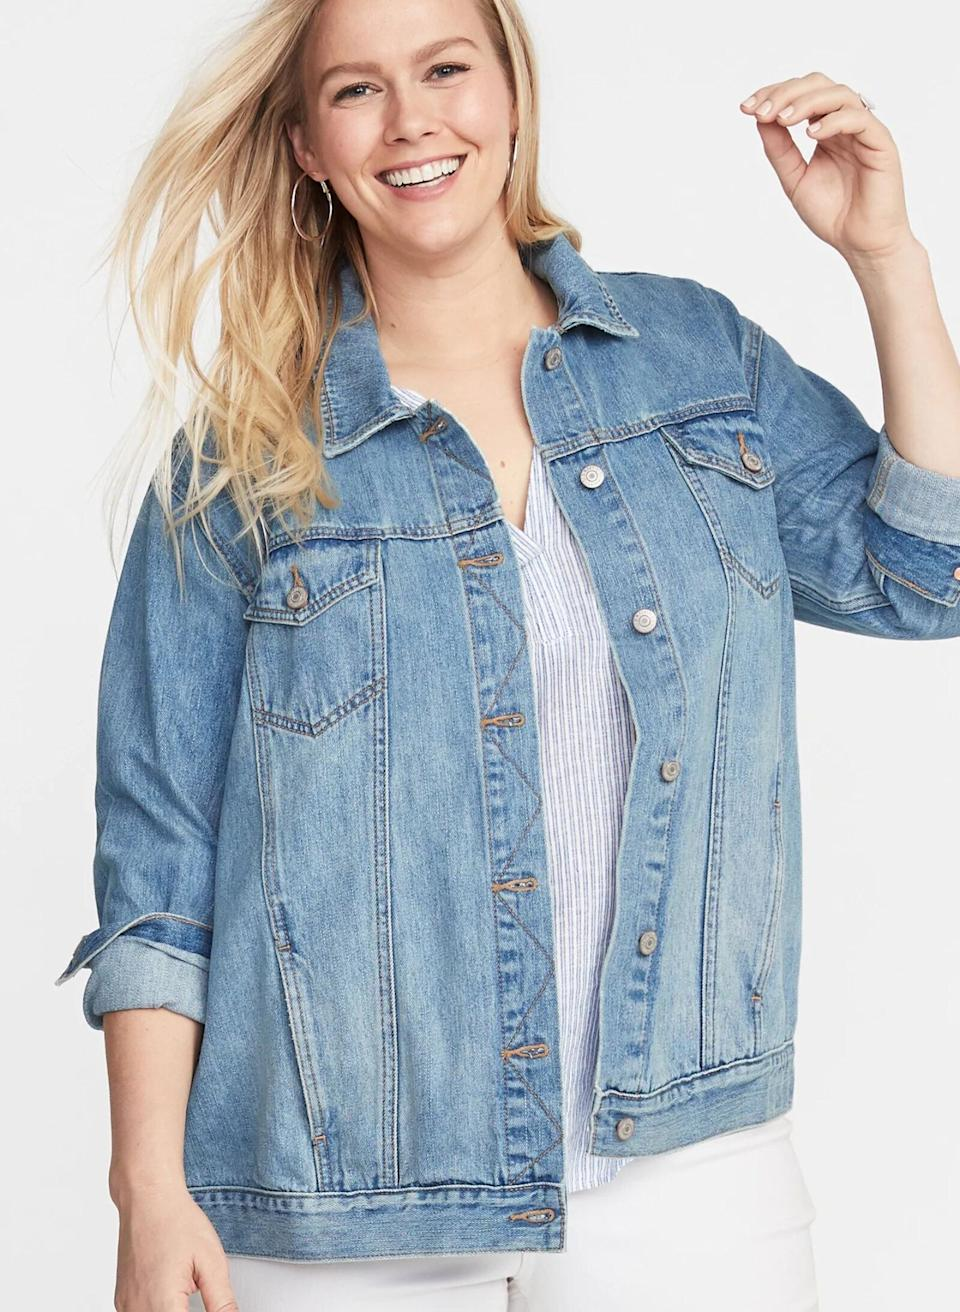 Old Navy's best-selling denim jacket is perfect for summer and under $50. (Photo: Old Navy)